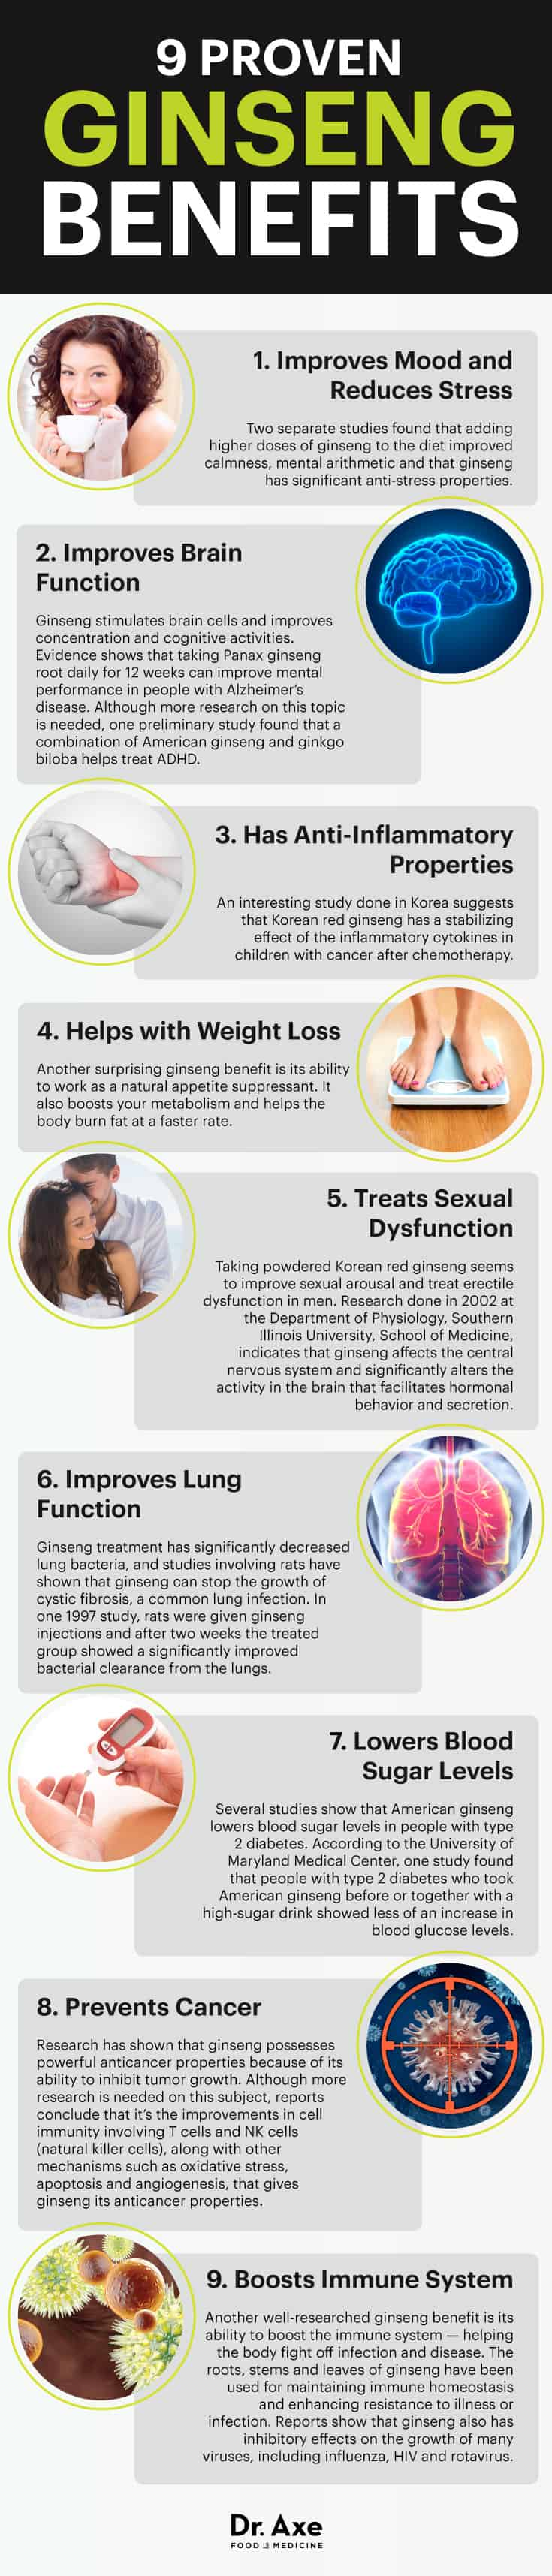 Image Result For What Is Ginseng Good For In The Body